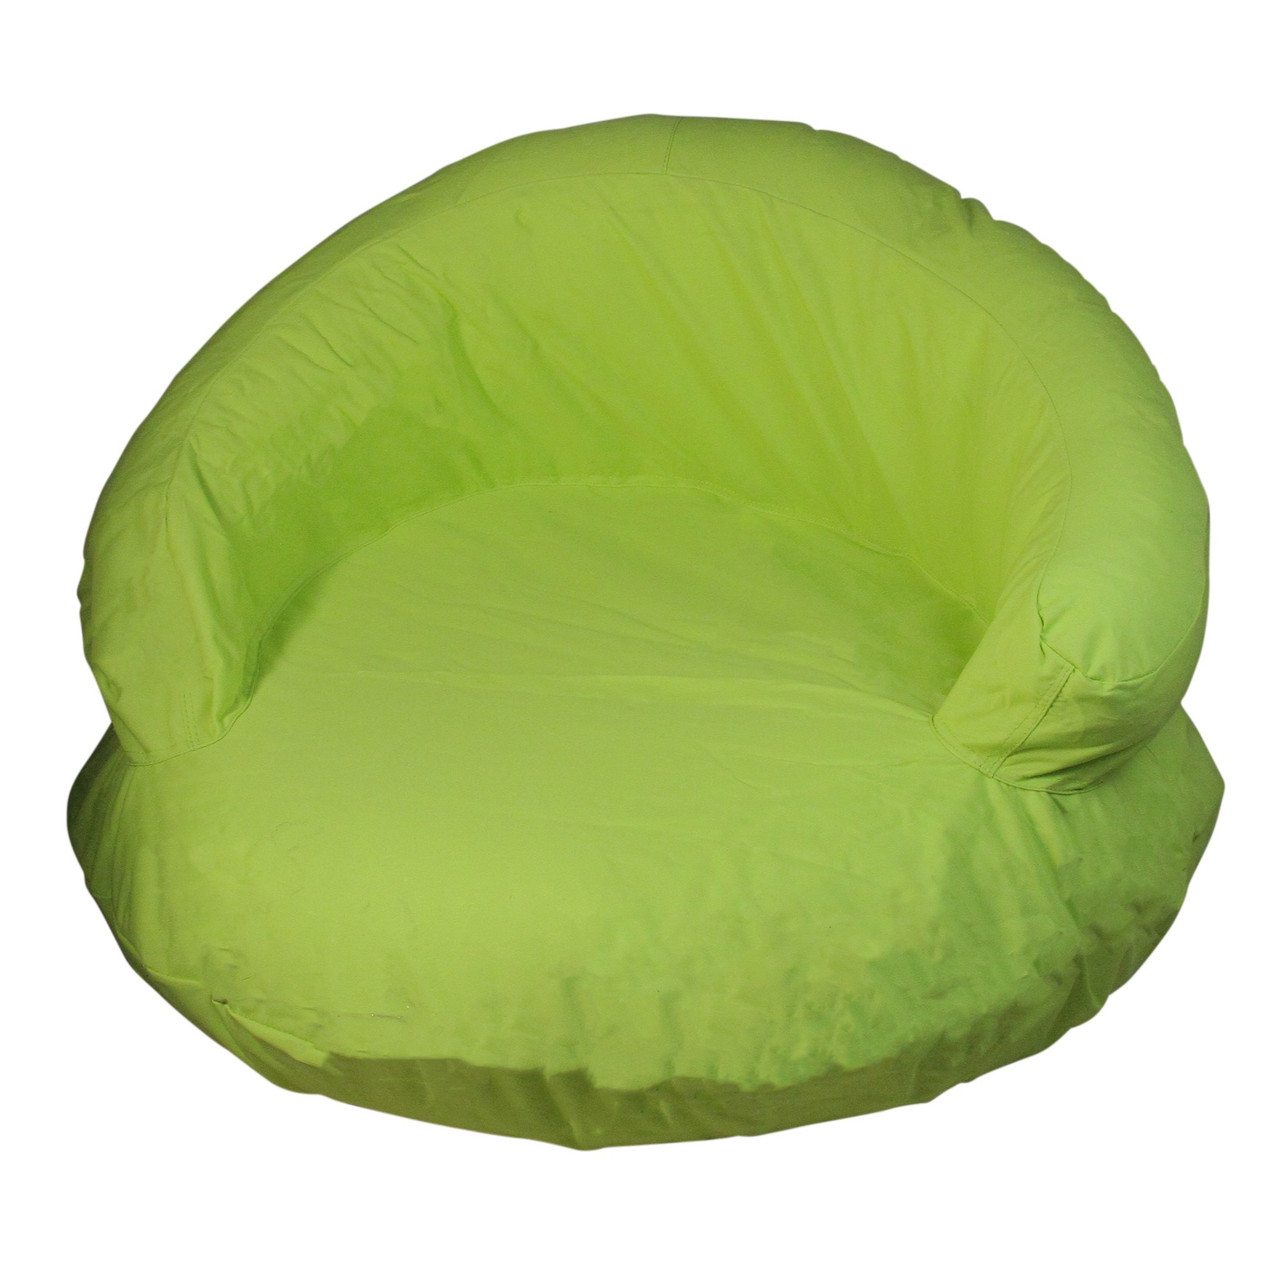 38 vibrant lime green sunsoft inflatable swimming pool chair float